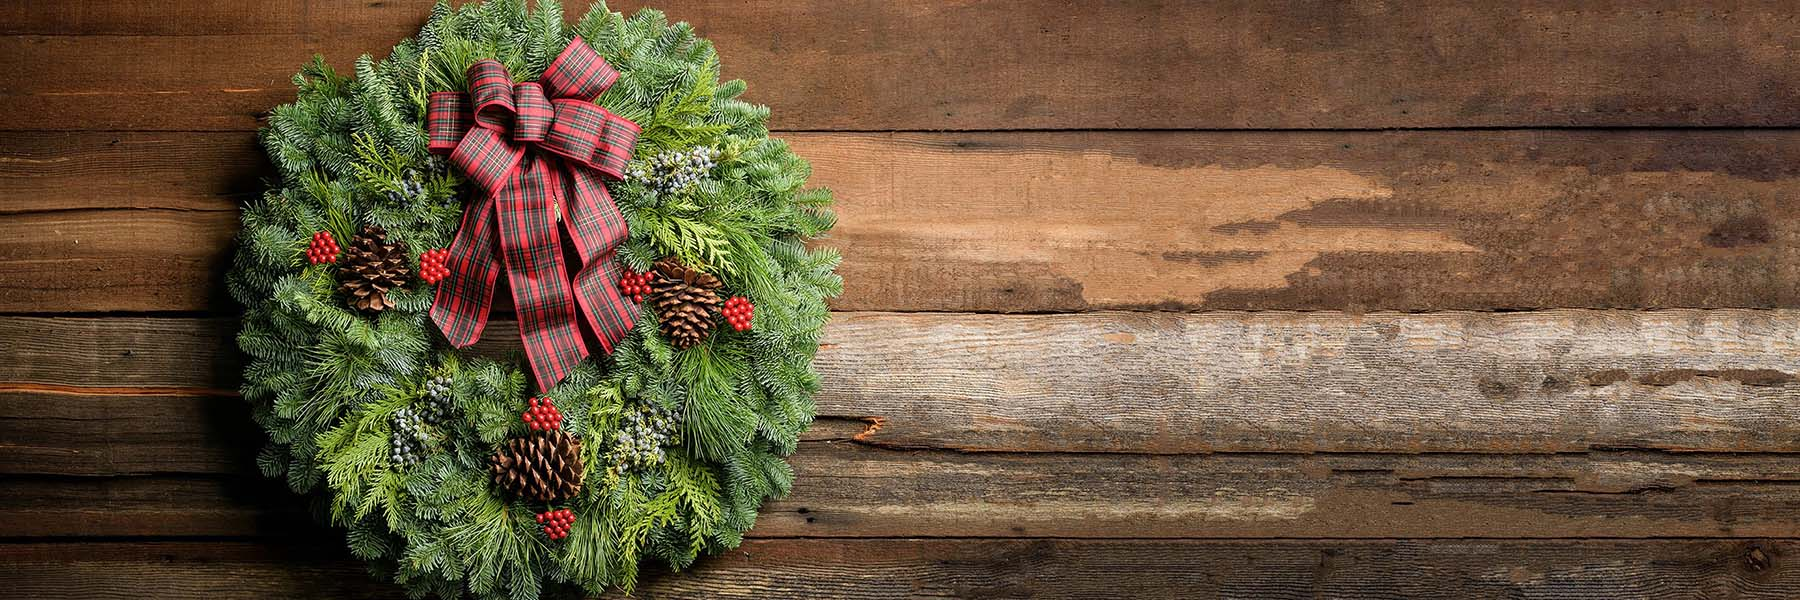 Holly Wreaths